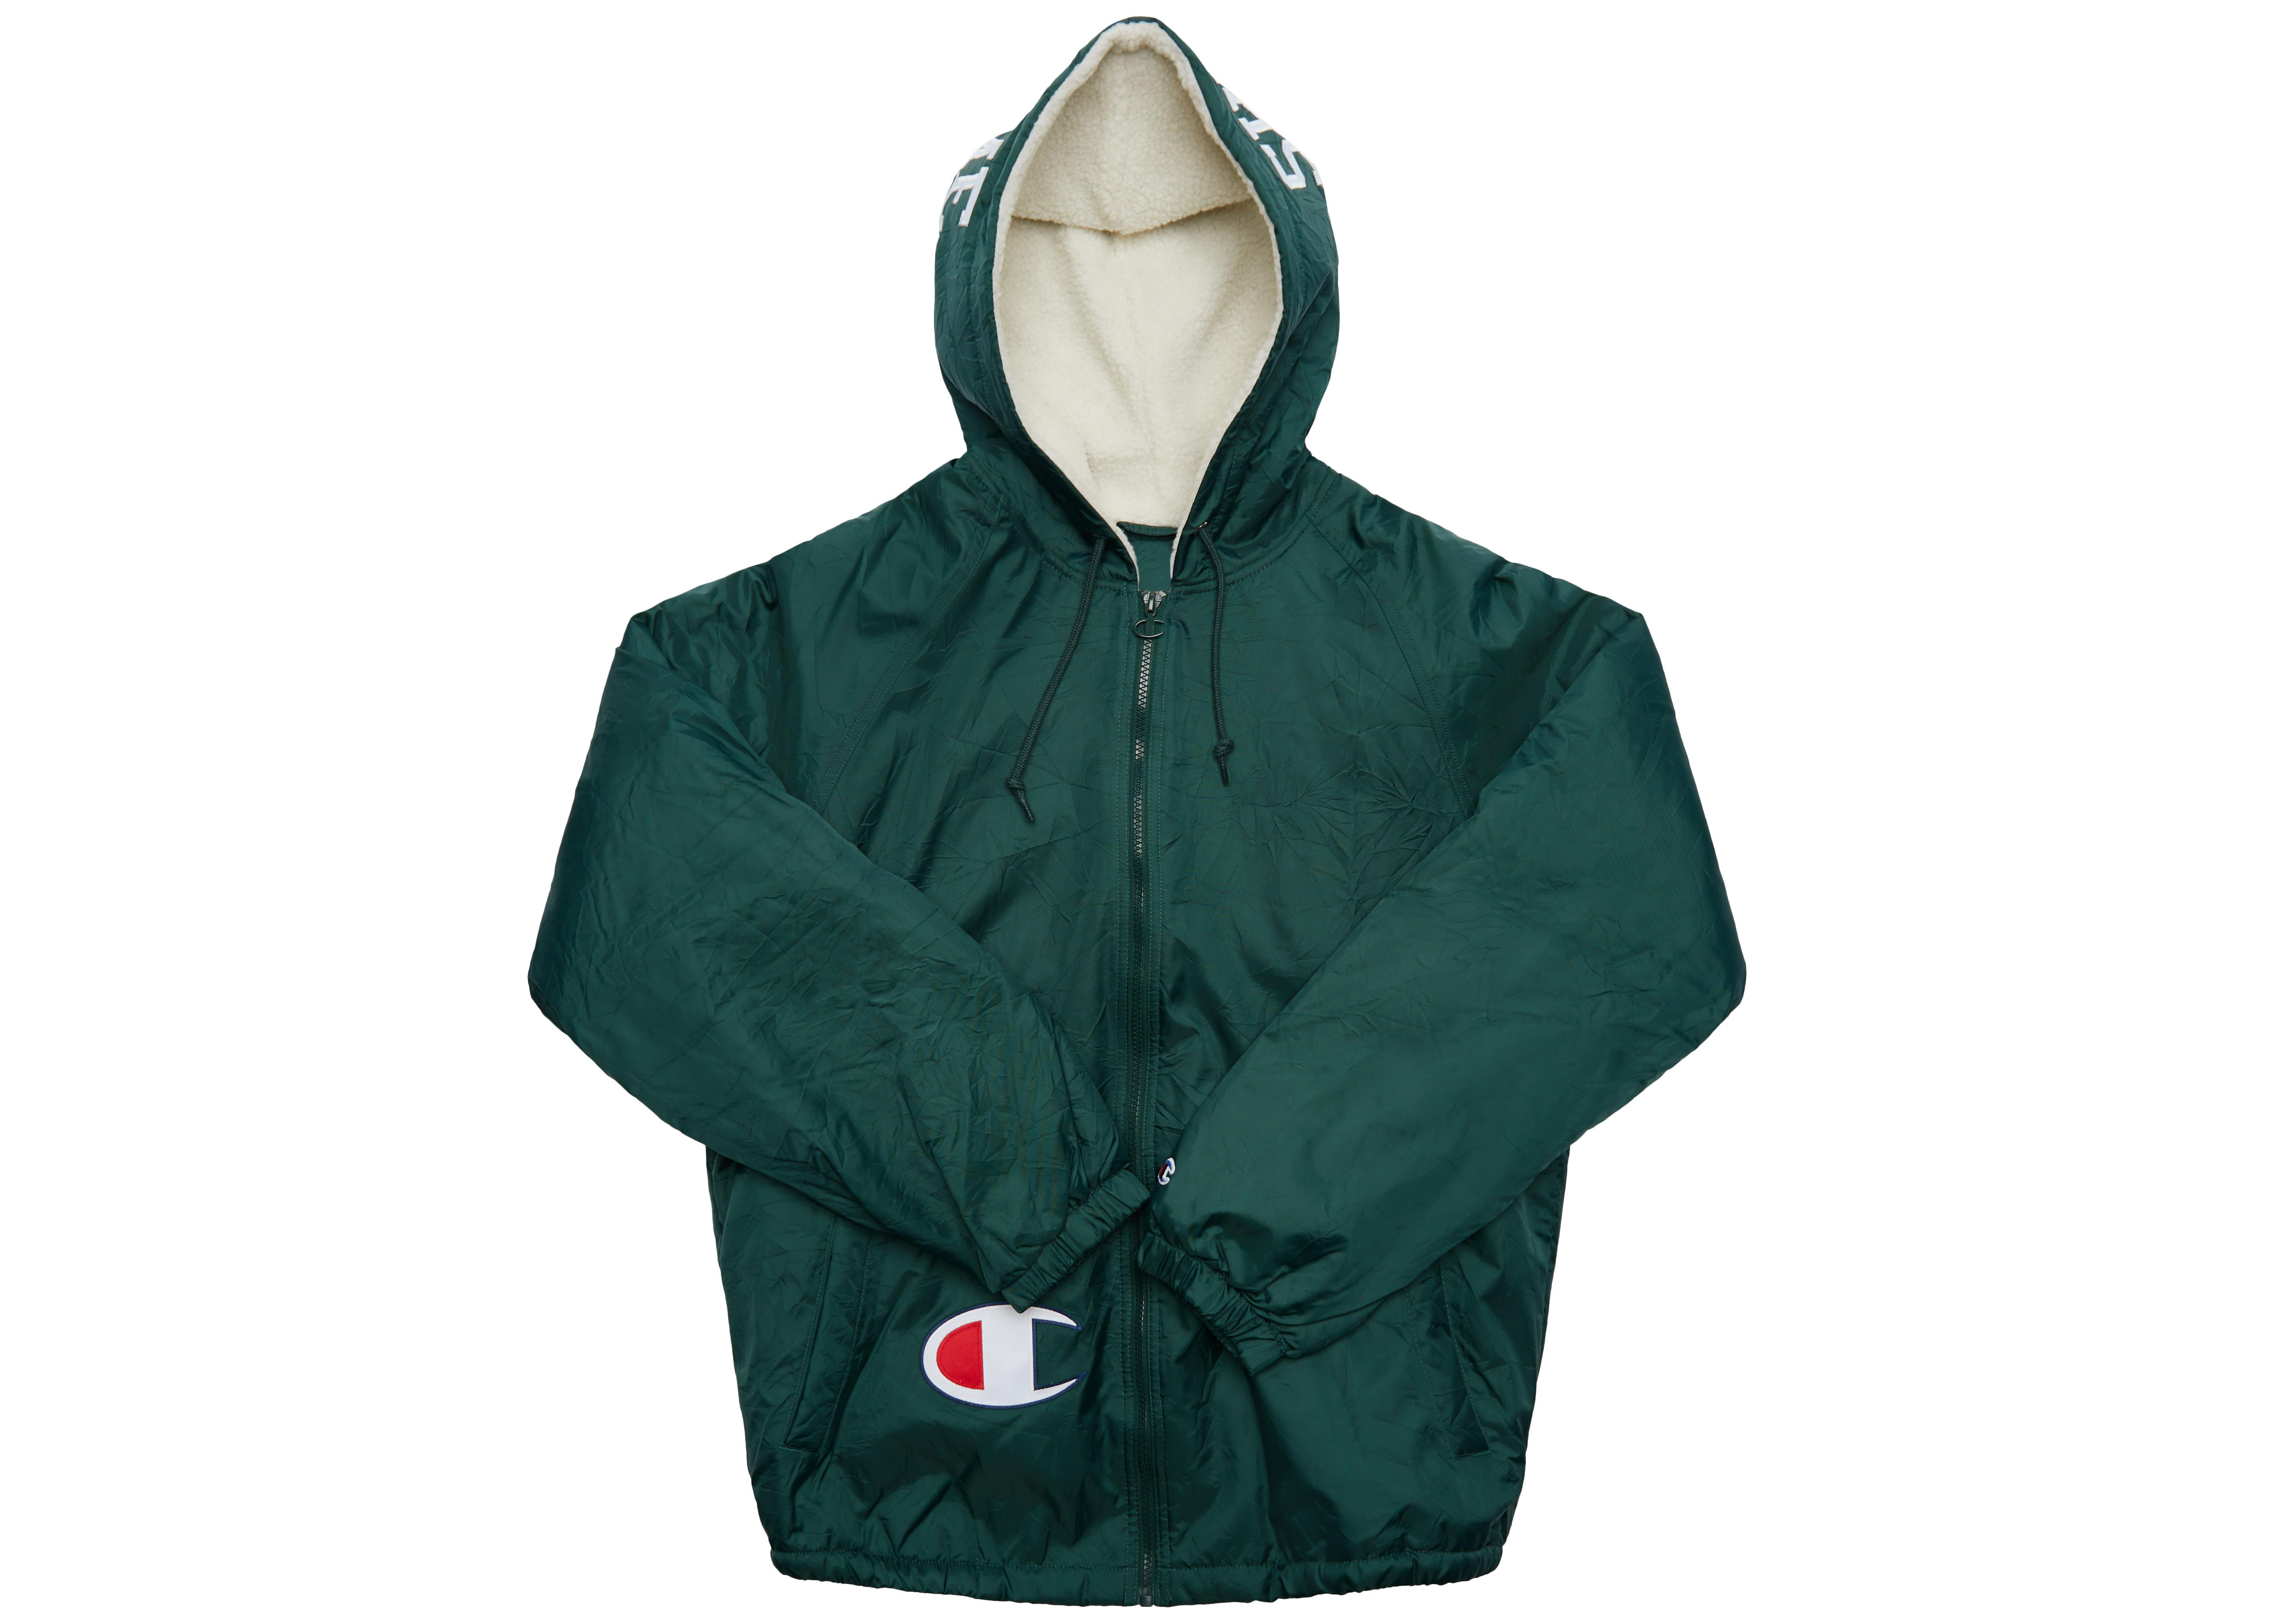 83fff30f Supreme Champion Sherpa Lined Hooded Jacket Dark Green in Green for ...